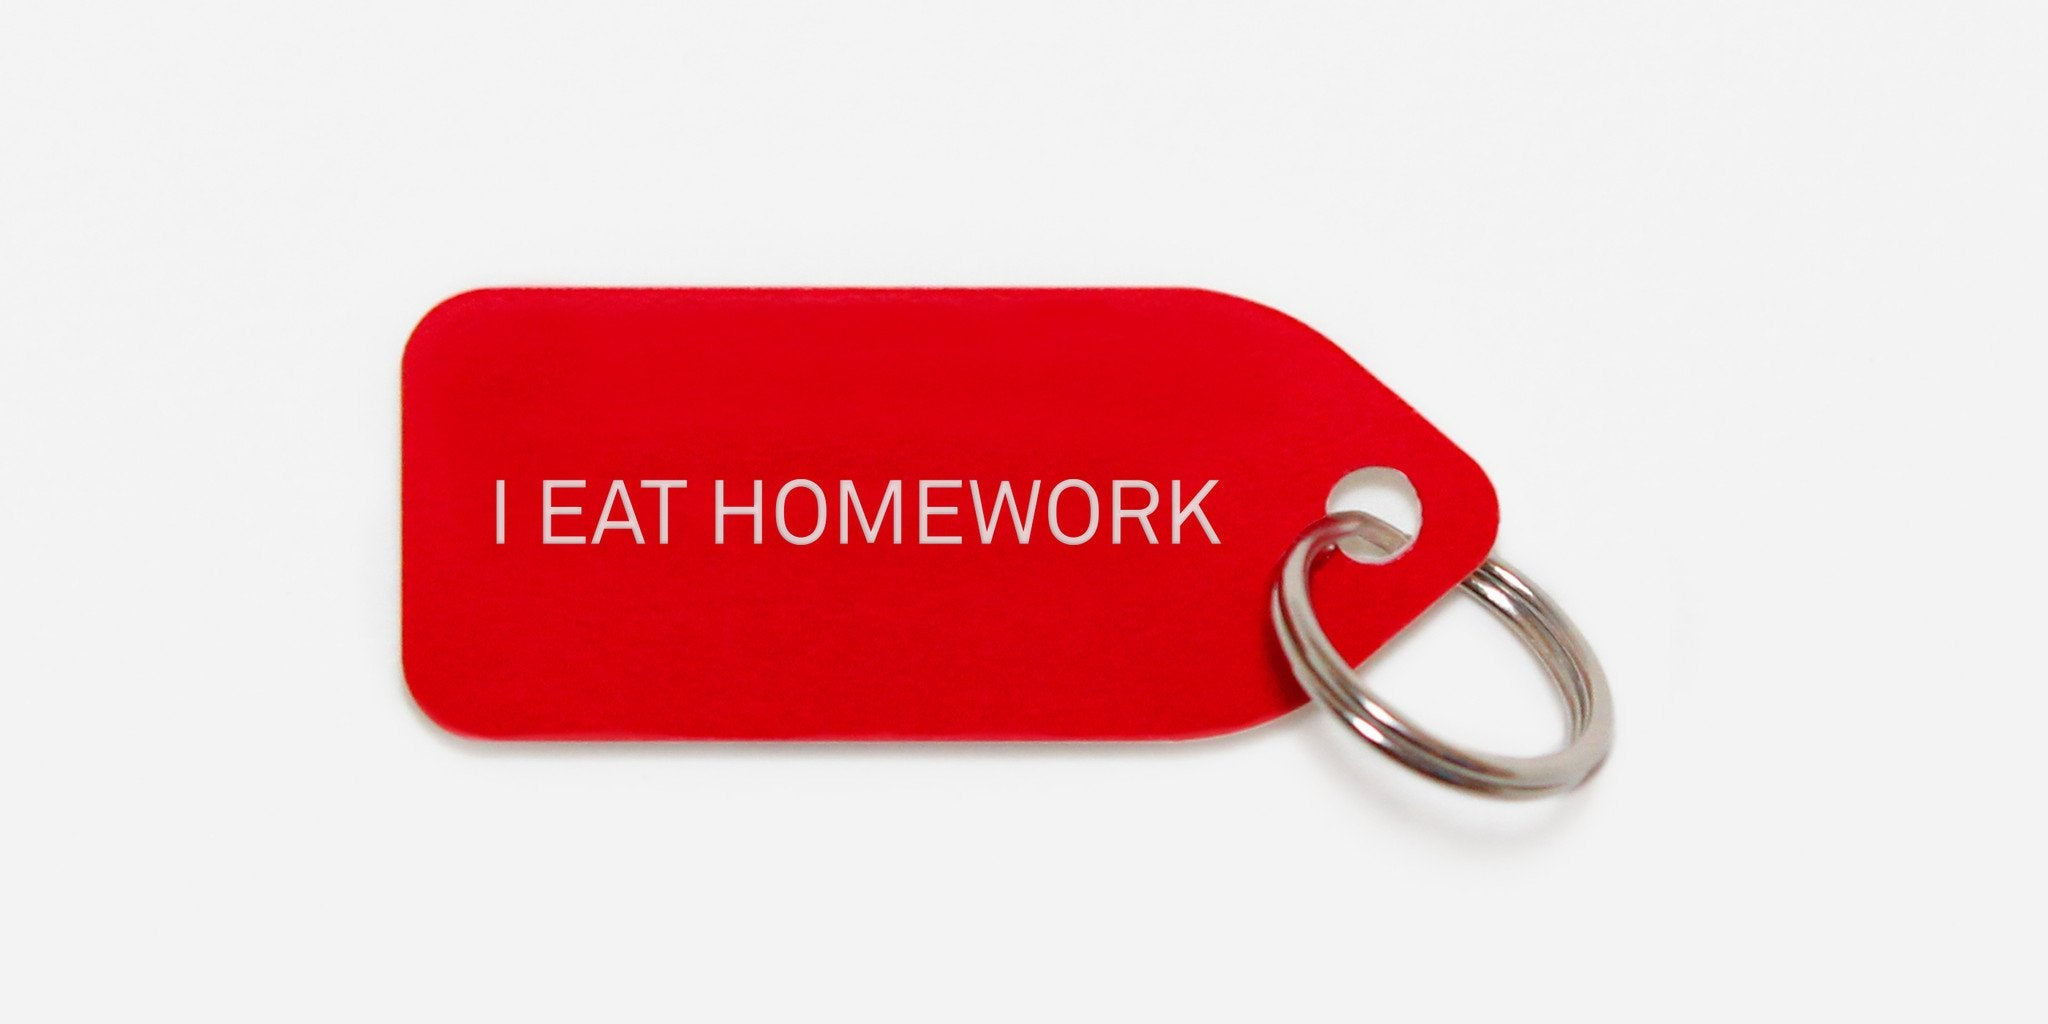 Dog tag - I eat homework